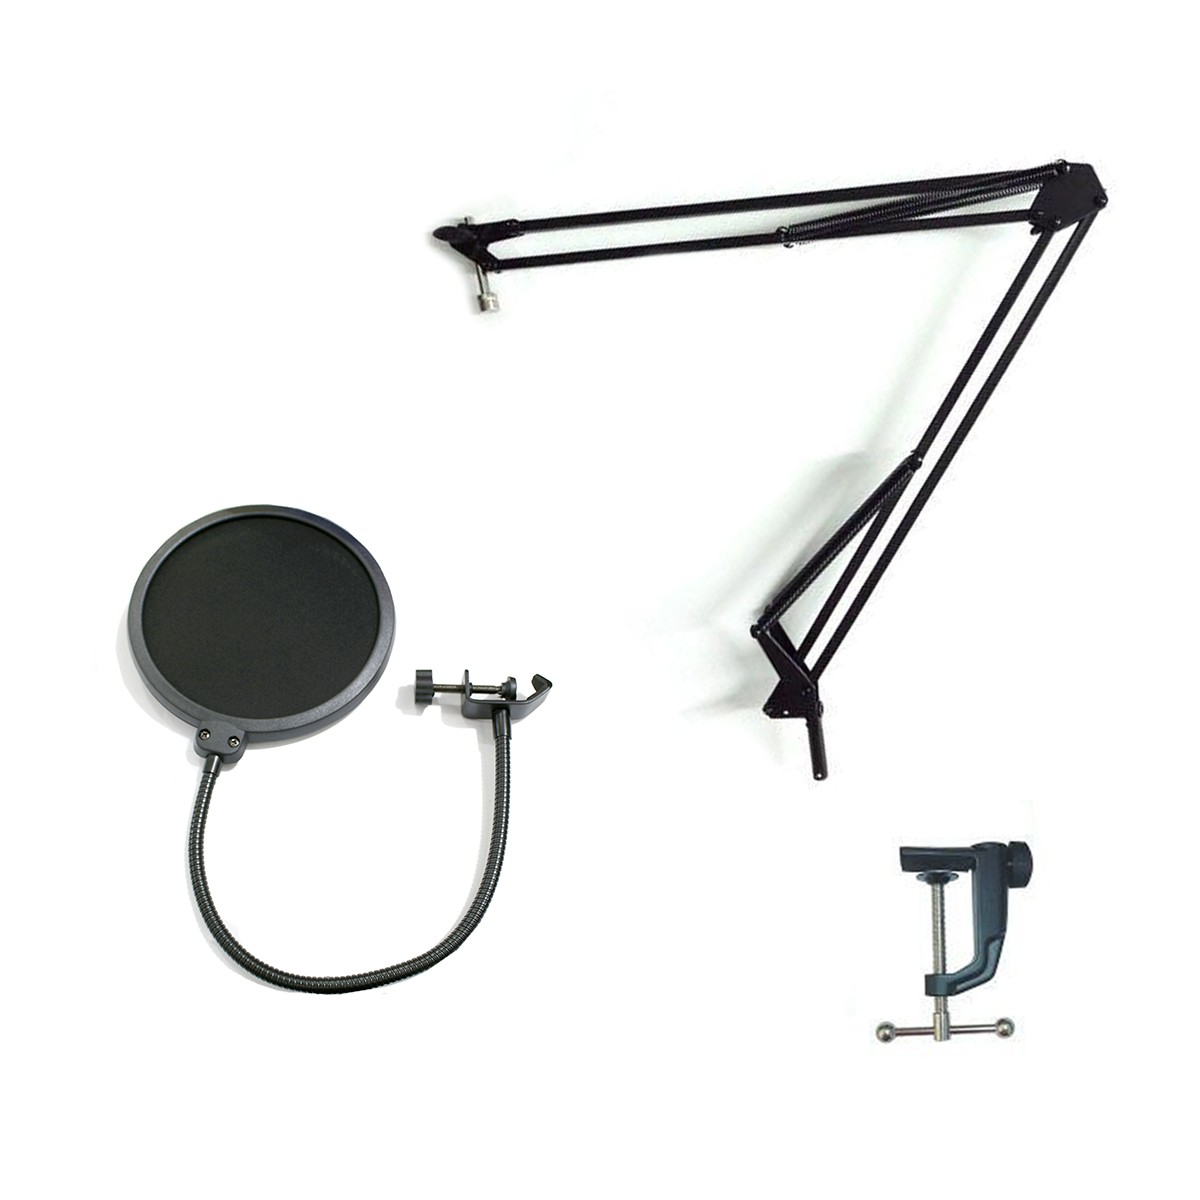 Kit Suporte articulado + Pop Filter MS15 SKSD0151 CSR